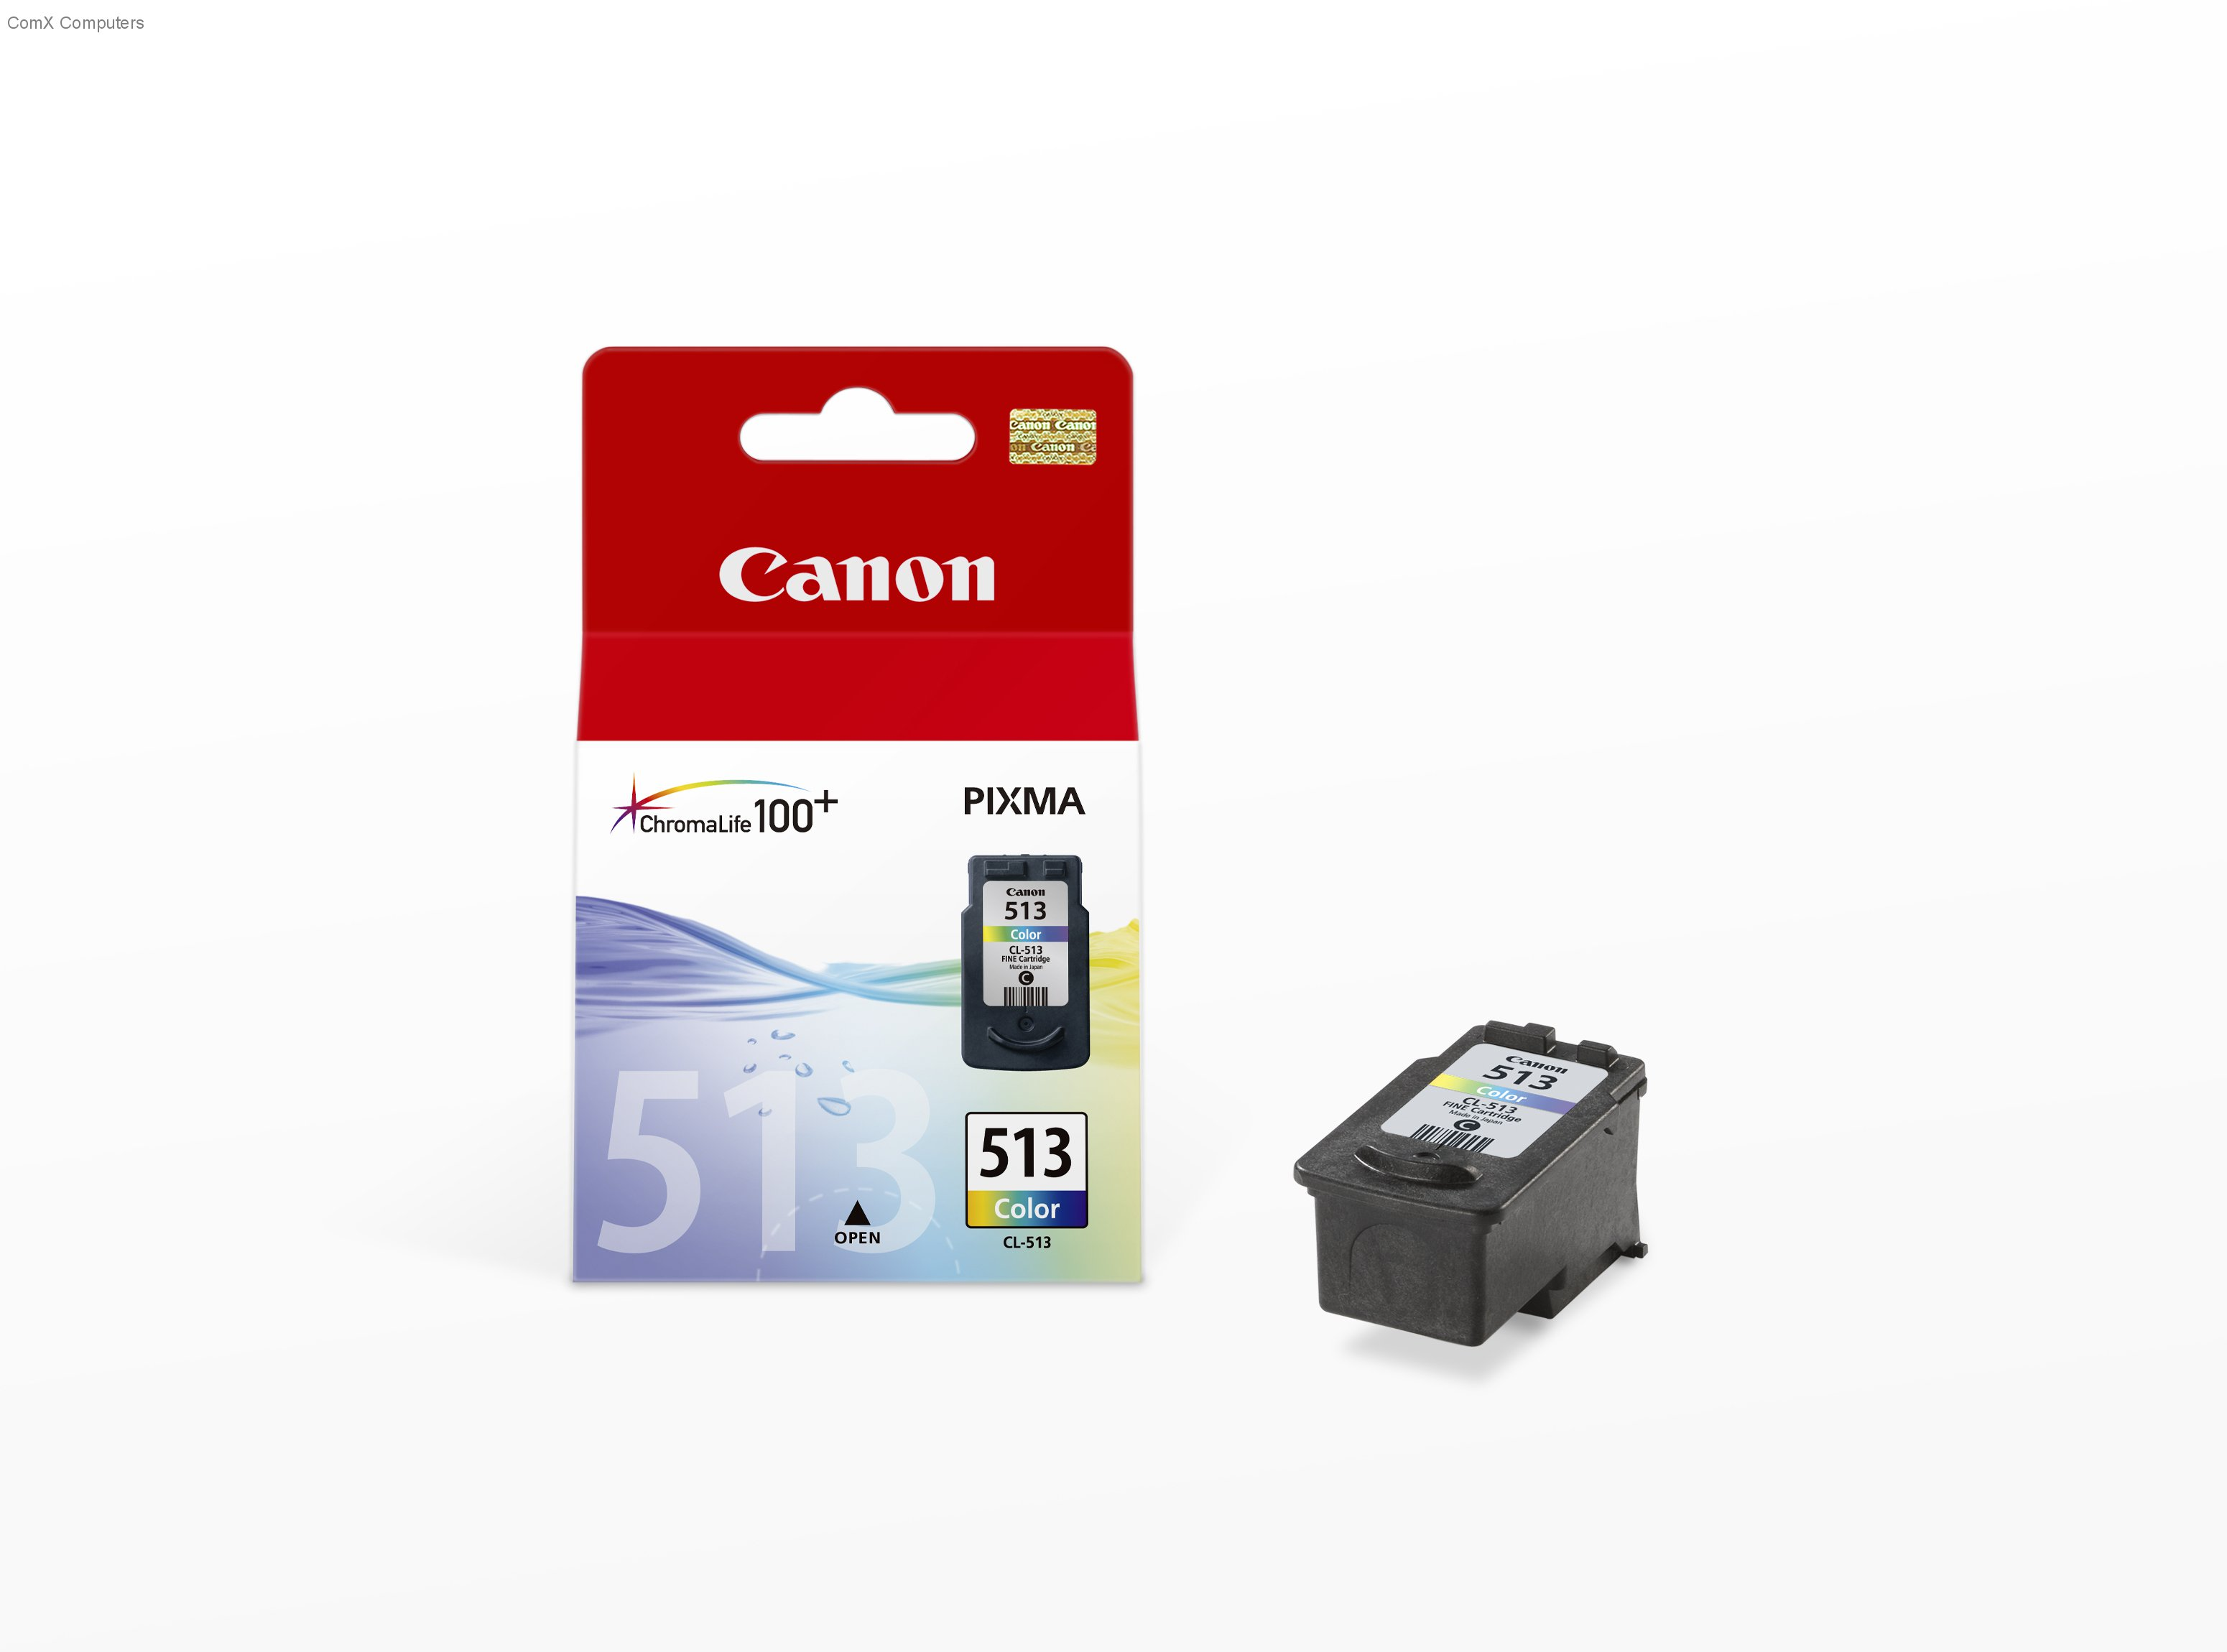 Canon CL-513 color ink , high yield 349 pages - for pixma ip2700, ip2702, mp230, mp240, mp250, mp260, mp270, mp280, mp480, mp490mx320. mx330, mx340, mx350, mx360, mx410, mx420